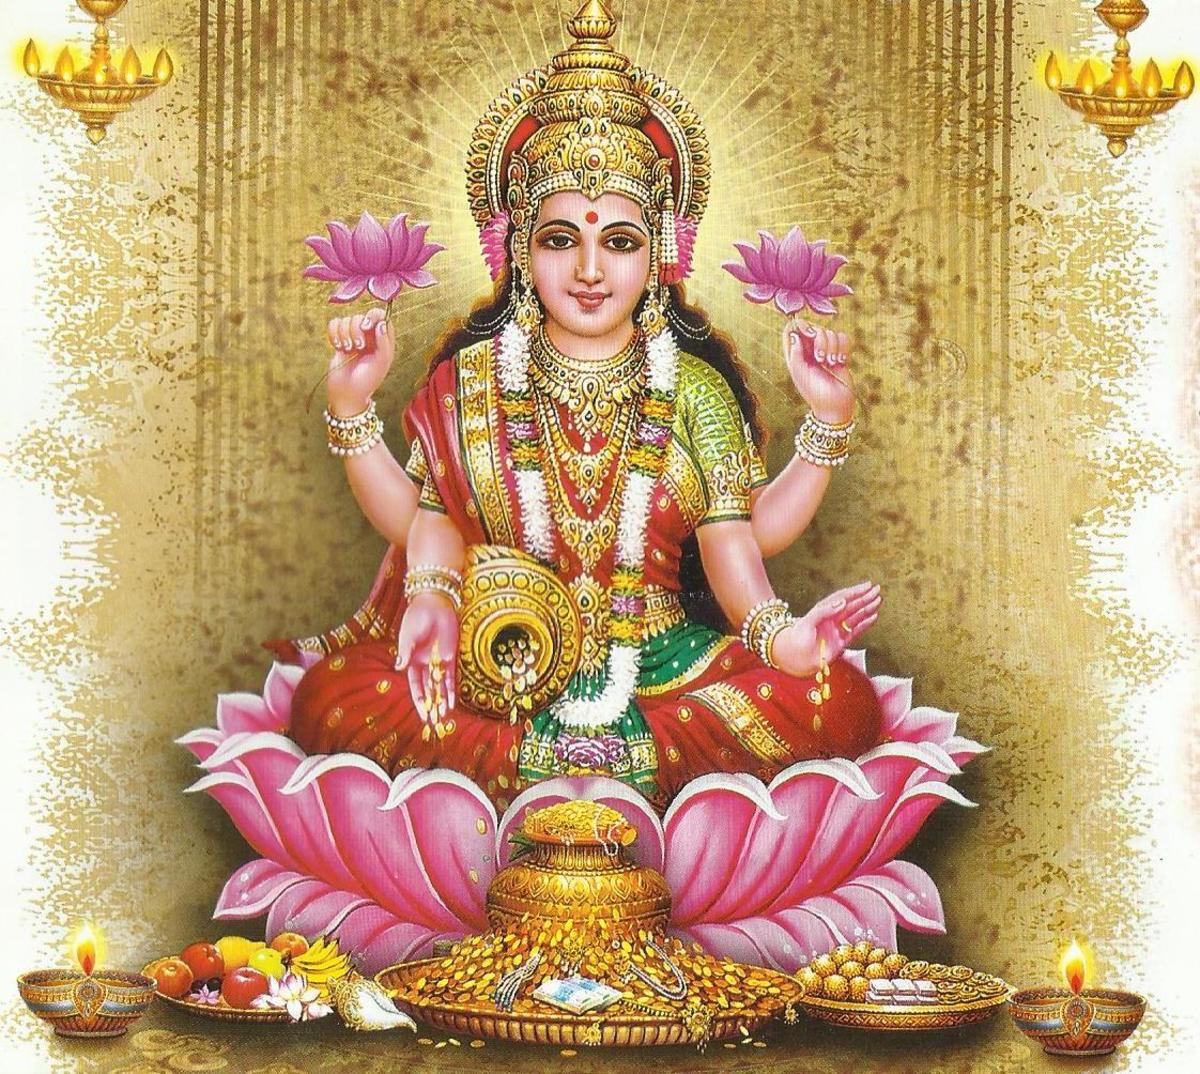 Mantras of Goddess Maha Lakshmi